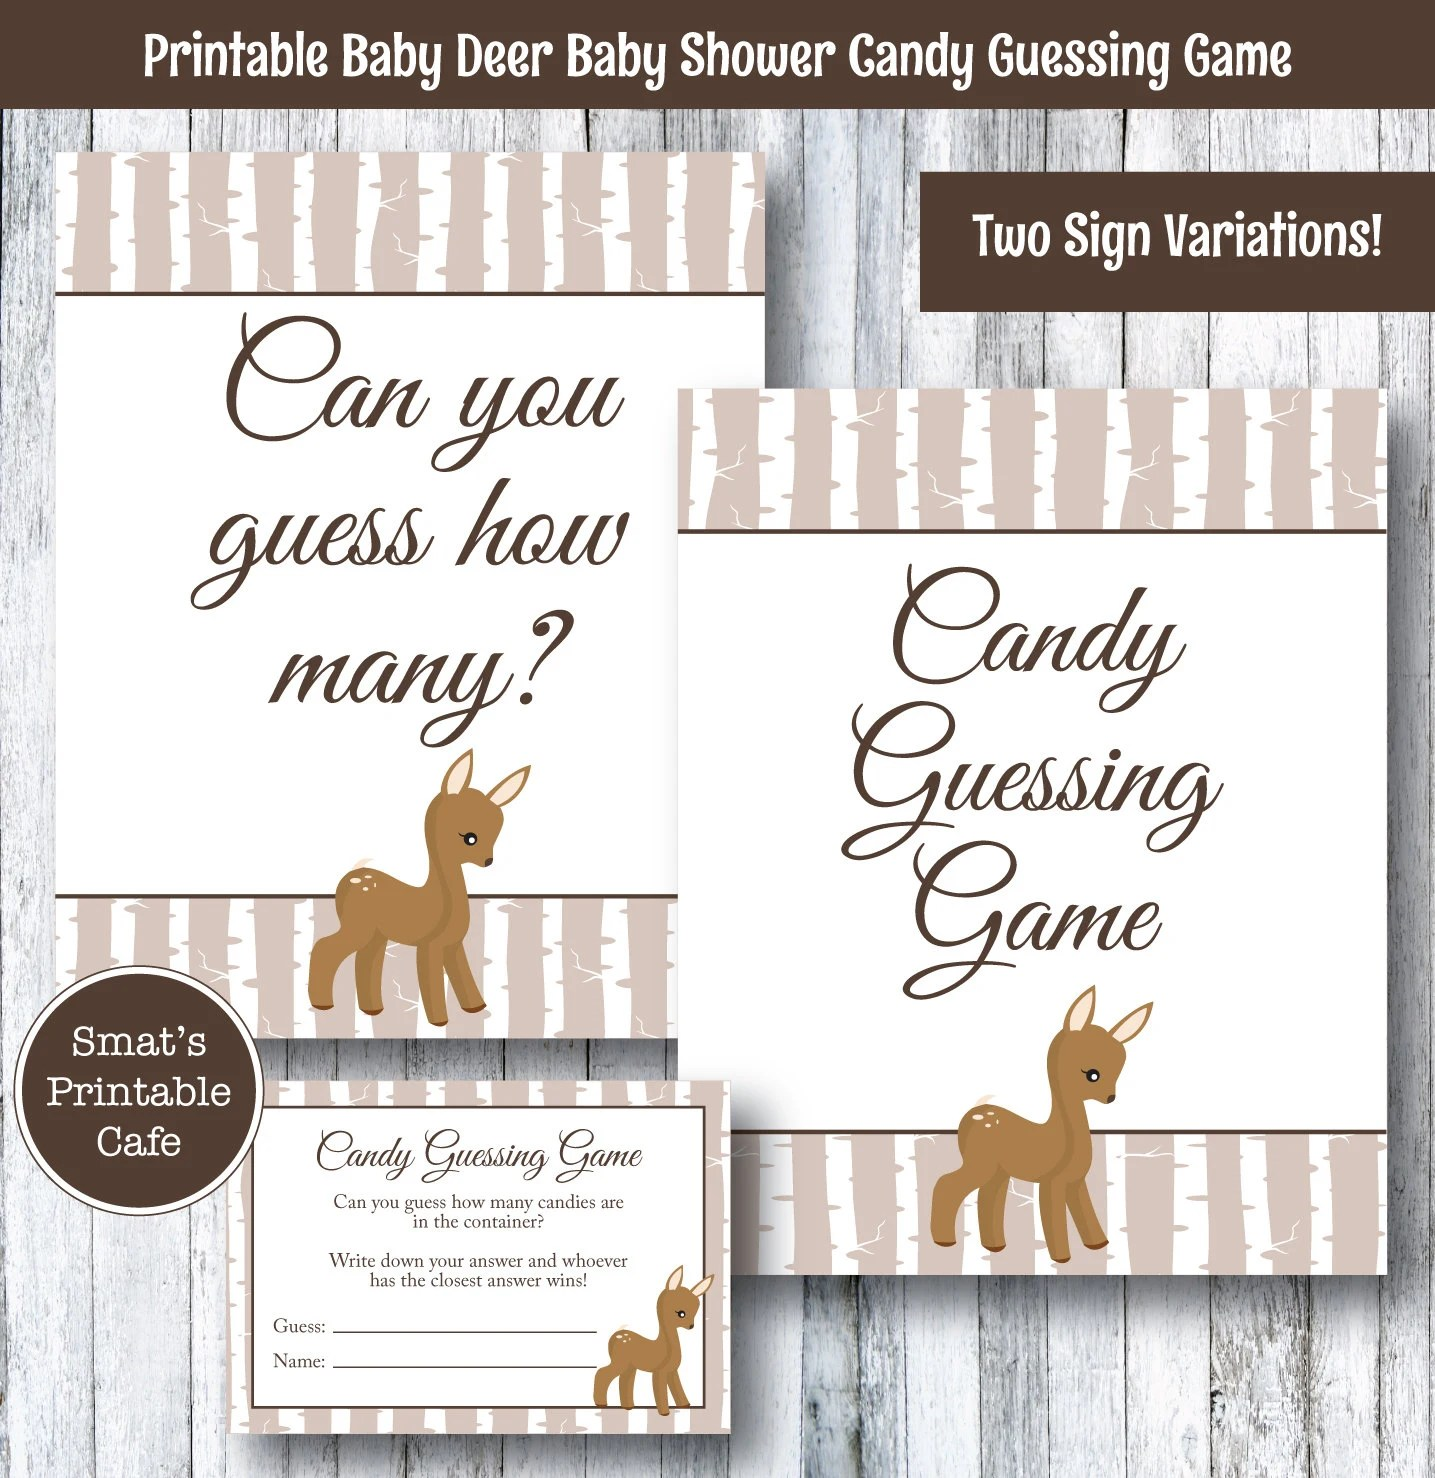 Baby Deer Baby Shower Candy Guessing Game Printable Rustic